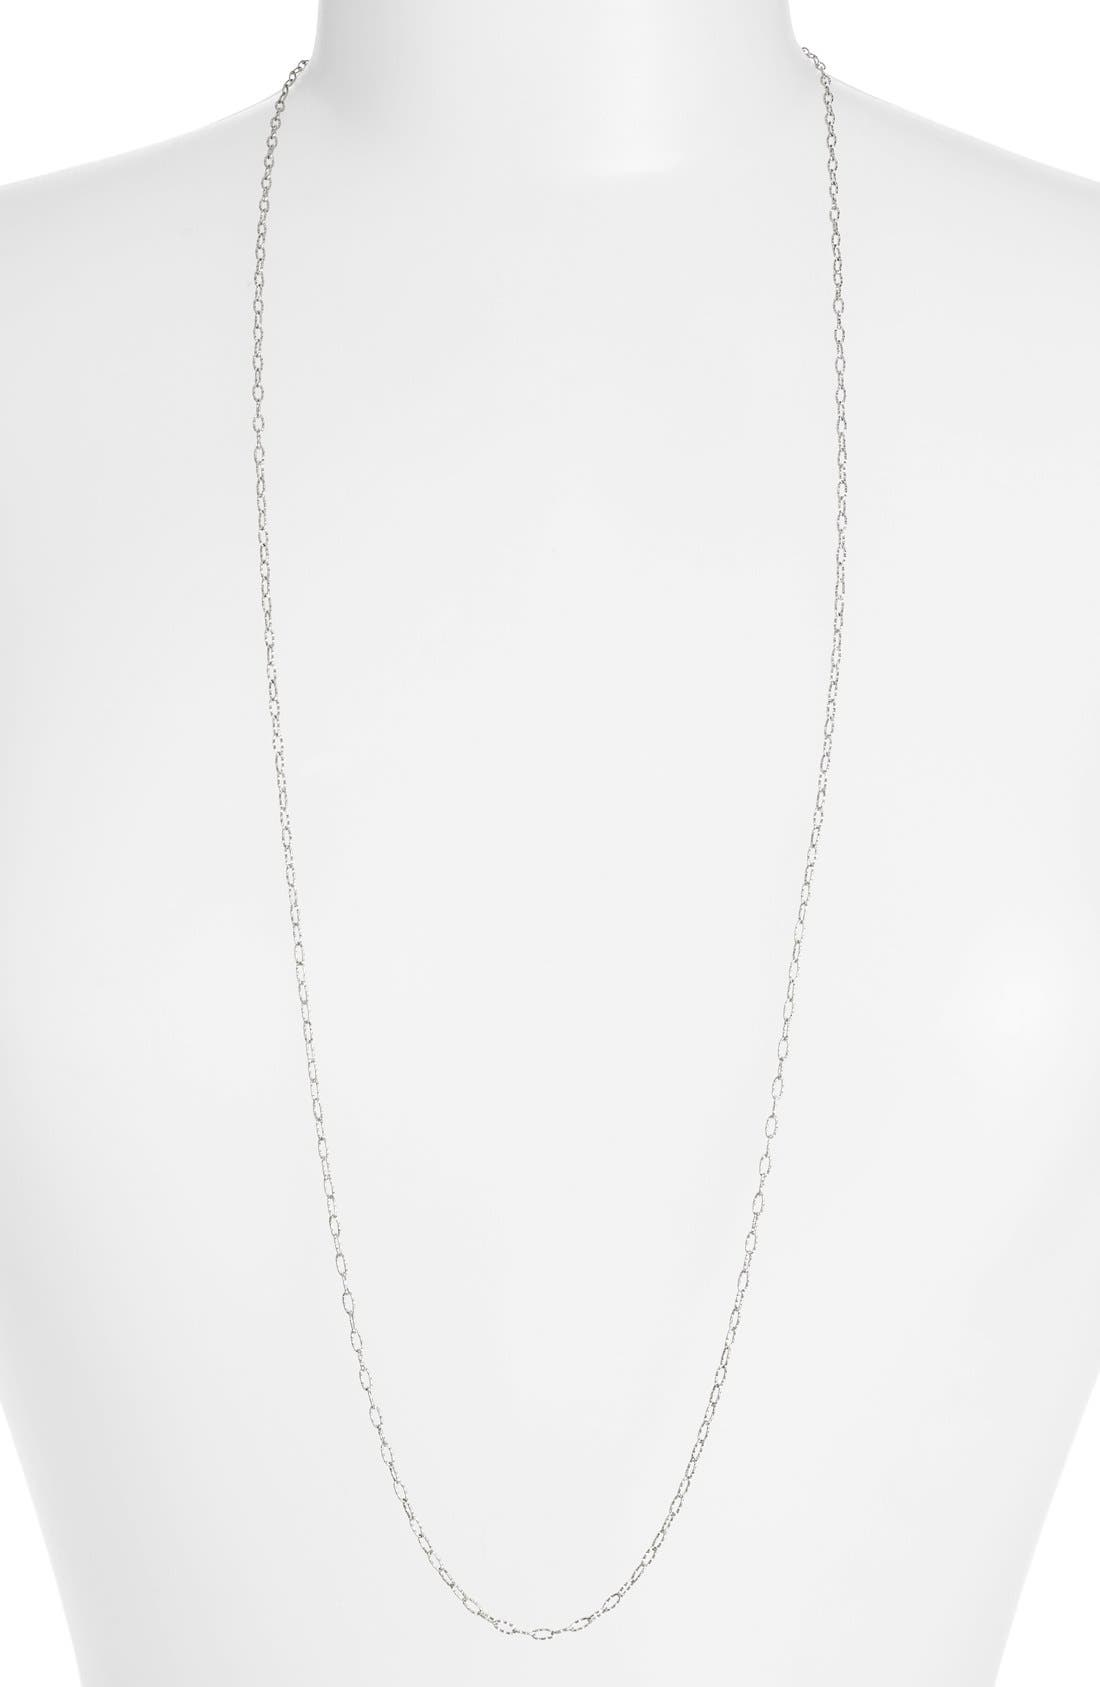 BONY LEVY Textured Chain Long Necklace